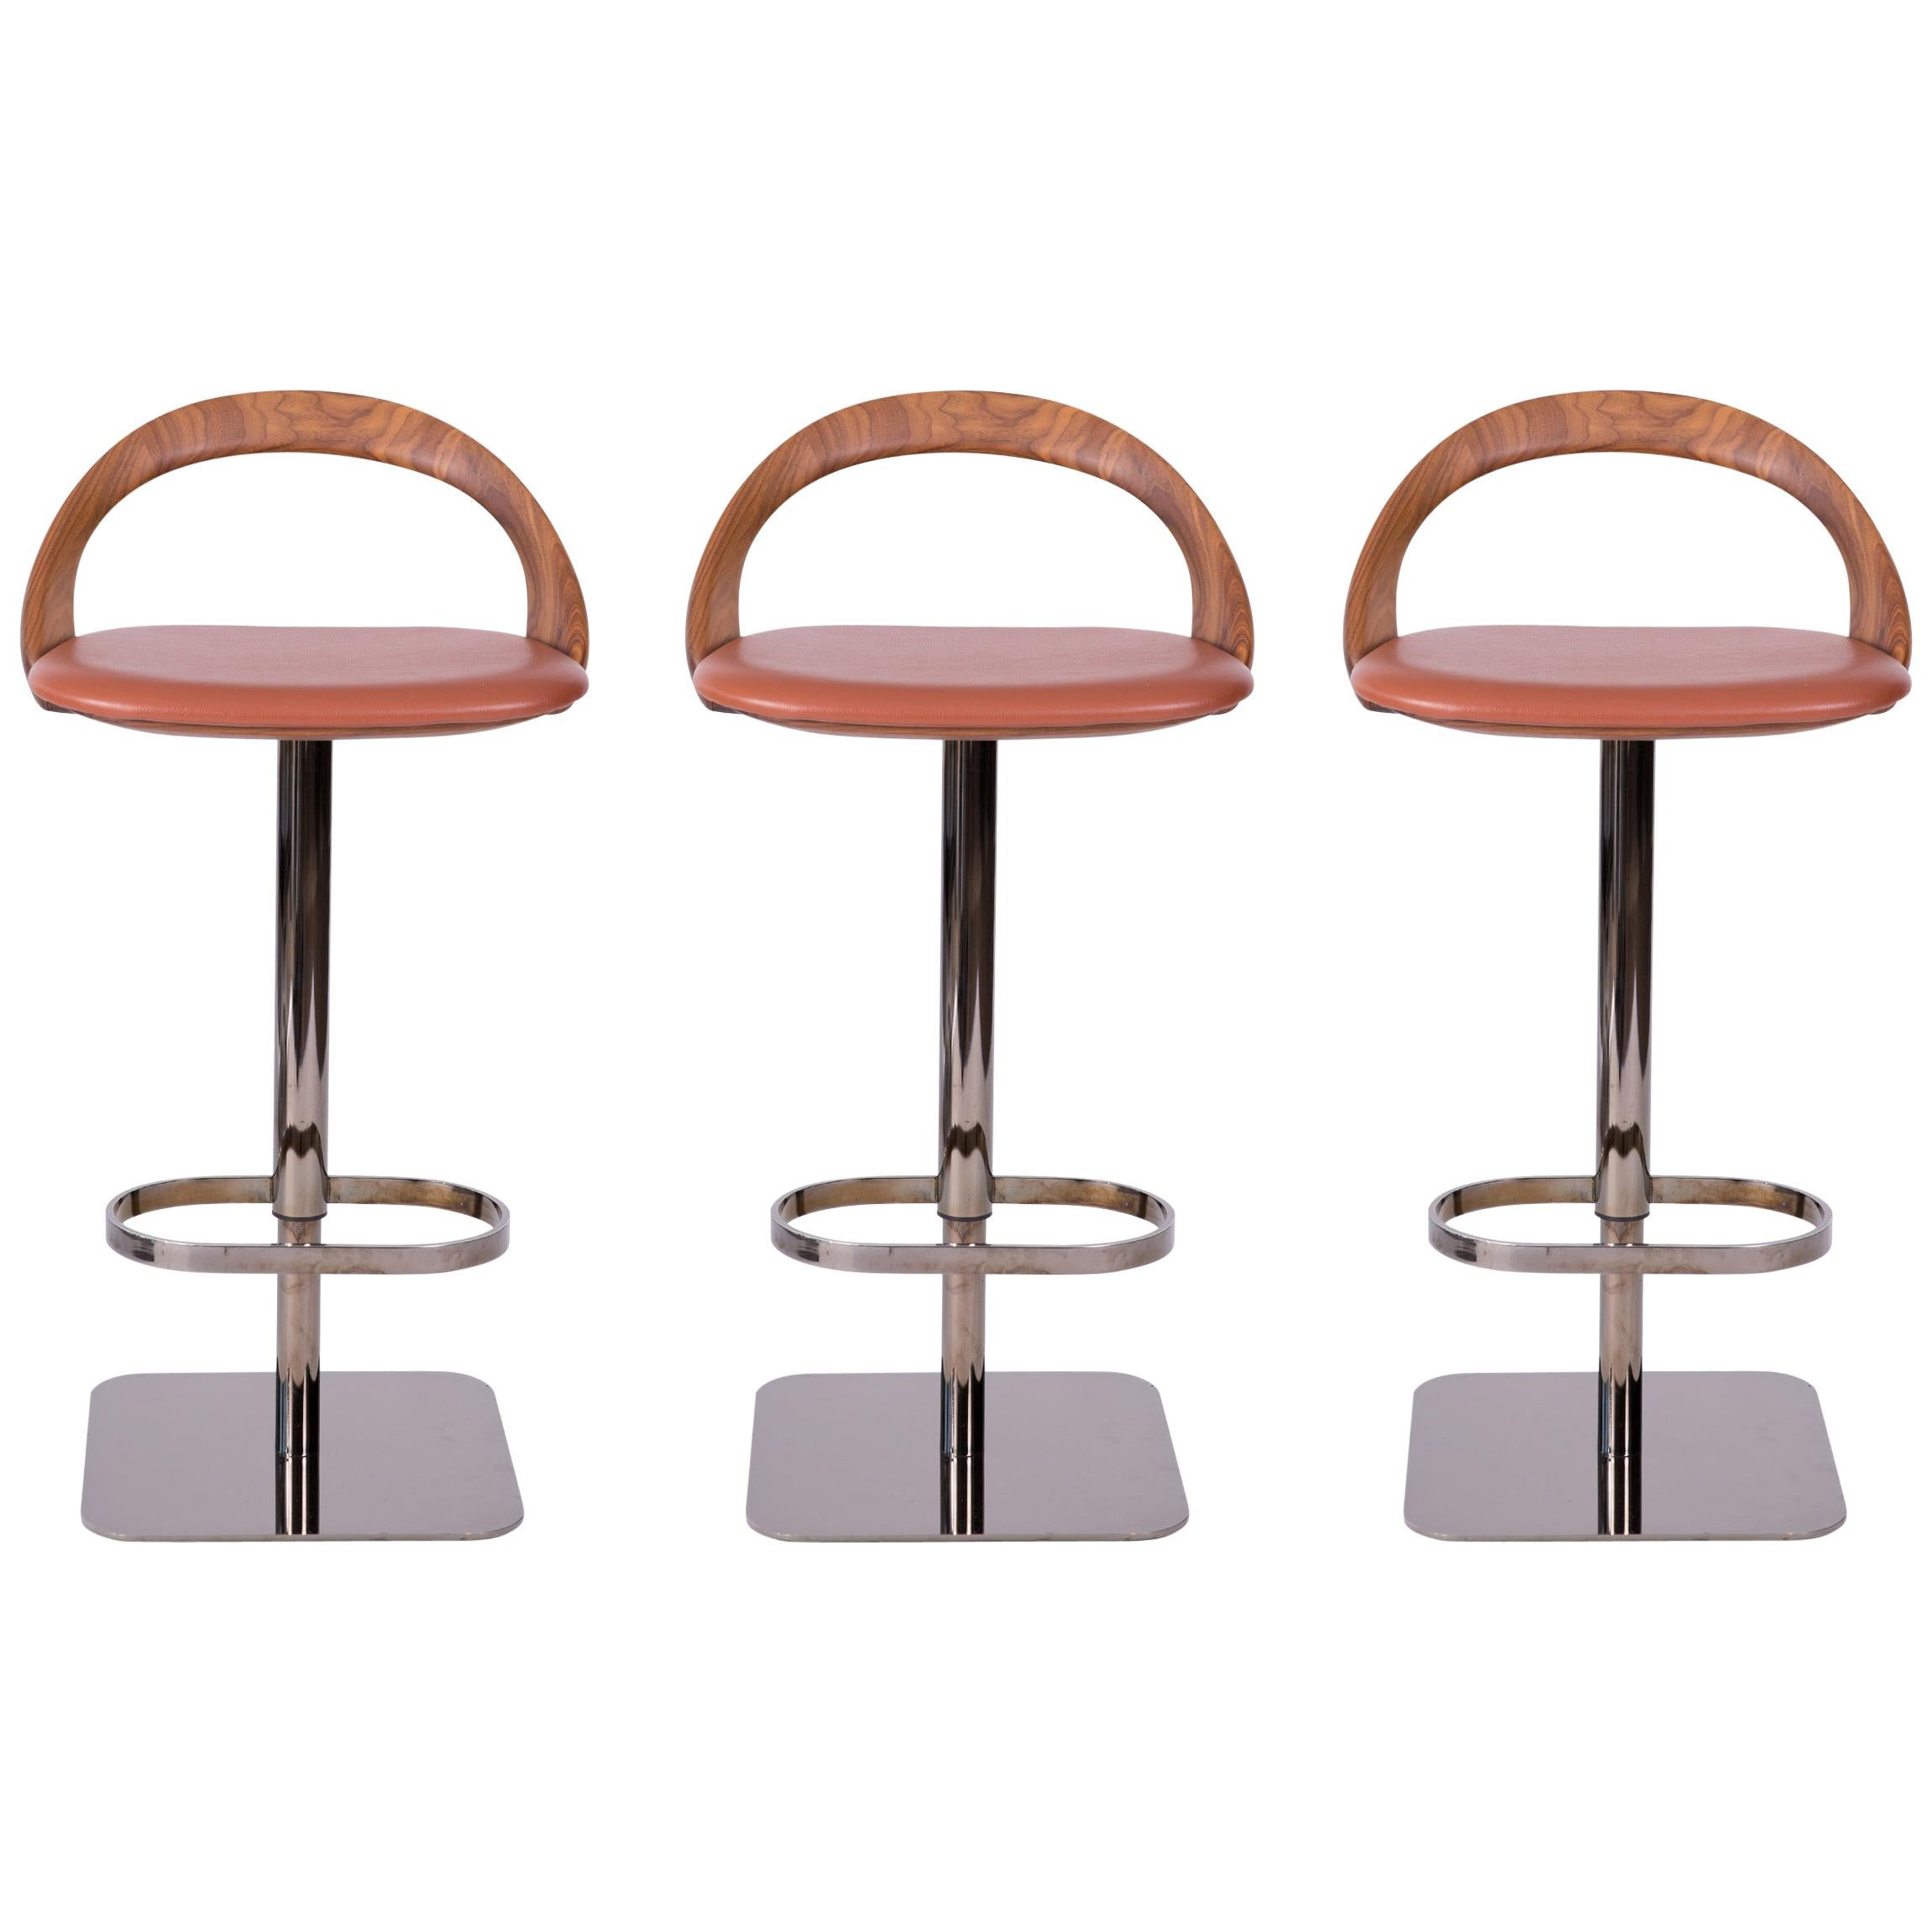 Amazing Gavilan Barstool Nickel With Walnut Details And Chocolate Brown Leather Andrewgaddart Wooden Chair Designs For Living Room Andrewgaddartcom